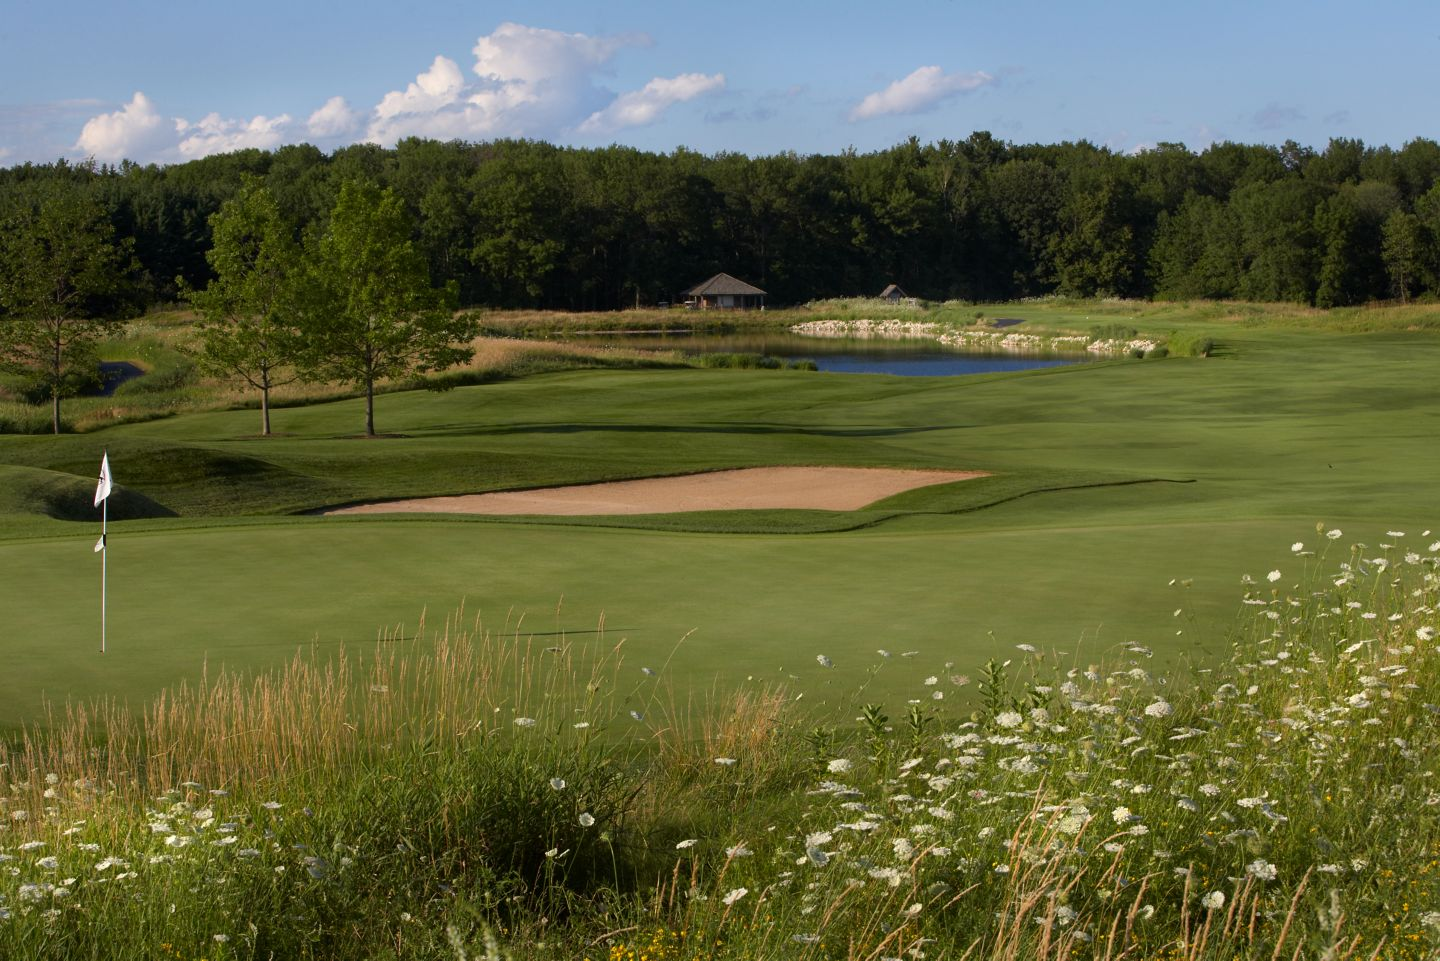 The first hole of the Meadow Valleys course from the back of the green with a view of the fairway and water hazard.